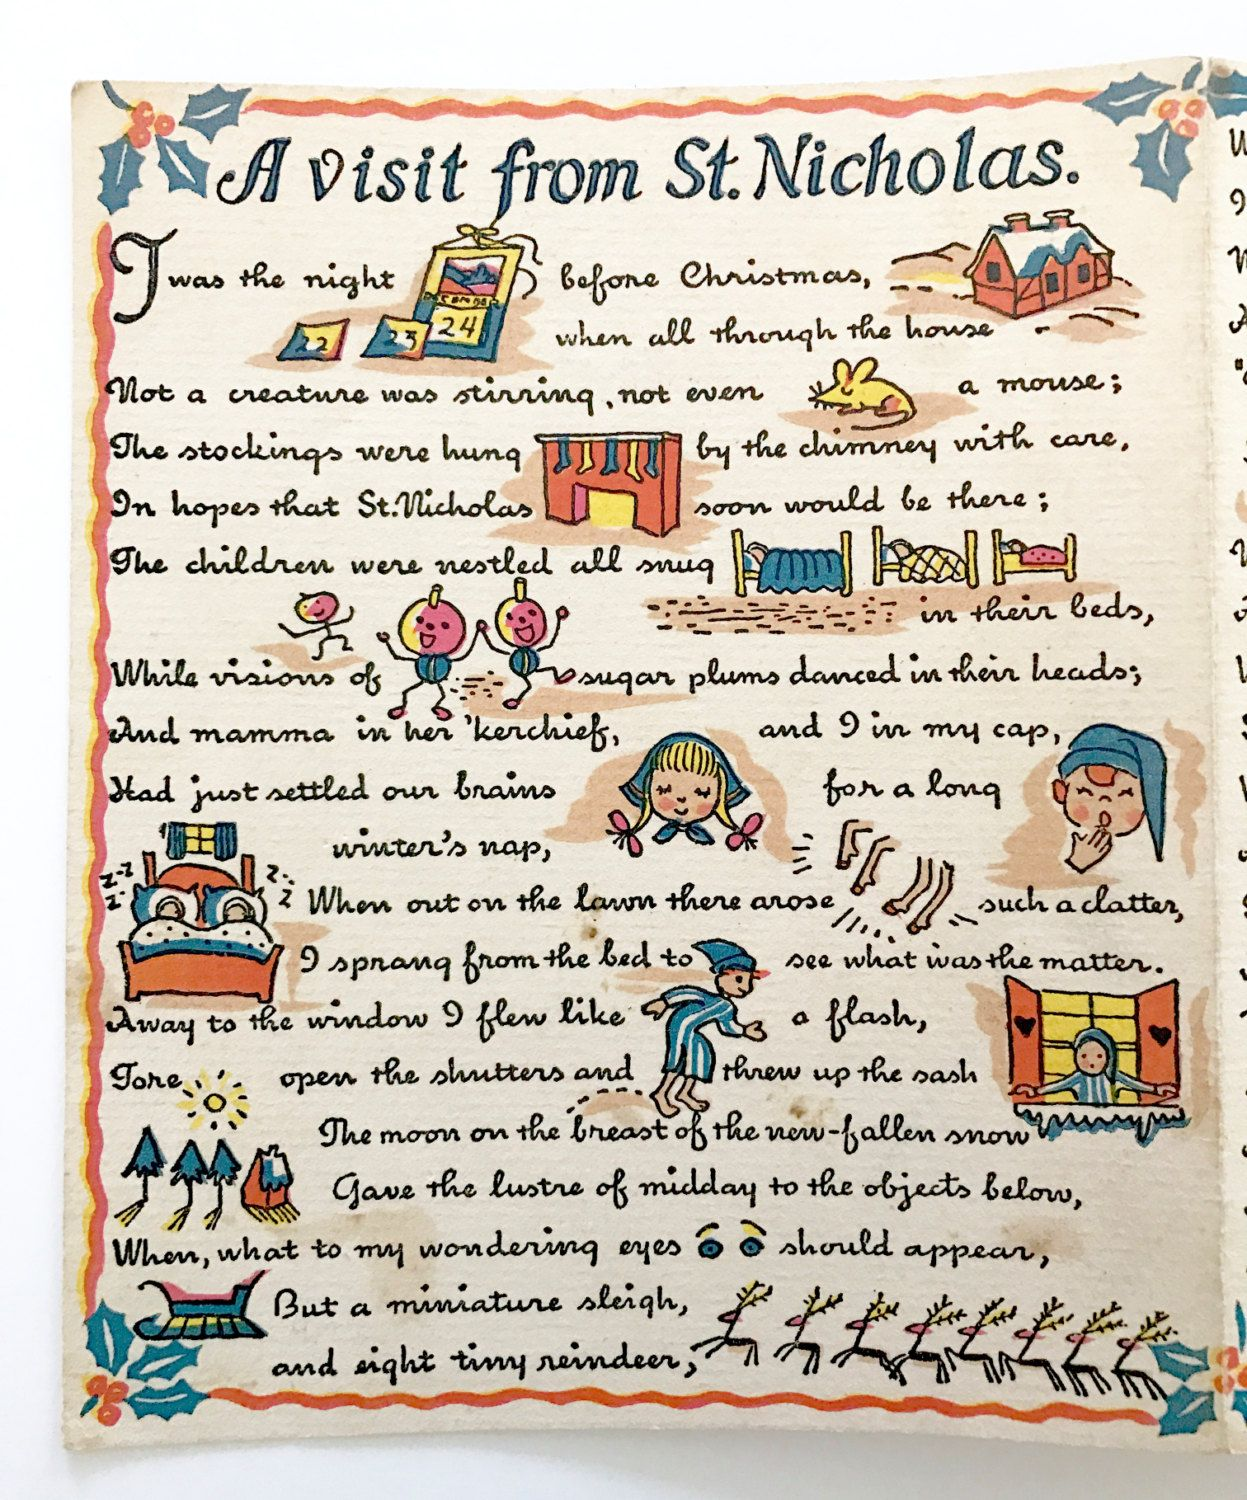 Vintage christmas greeting card a visit from st nicholas rebus poem vintage christmas greeting card a visit from st nicholas rebus poem 1949 by neatokeen on kristyandbryce Choice Image